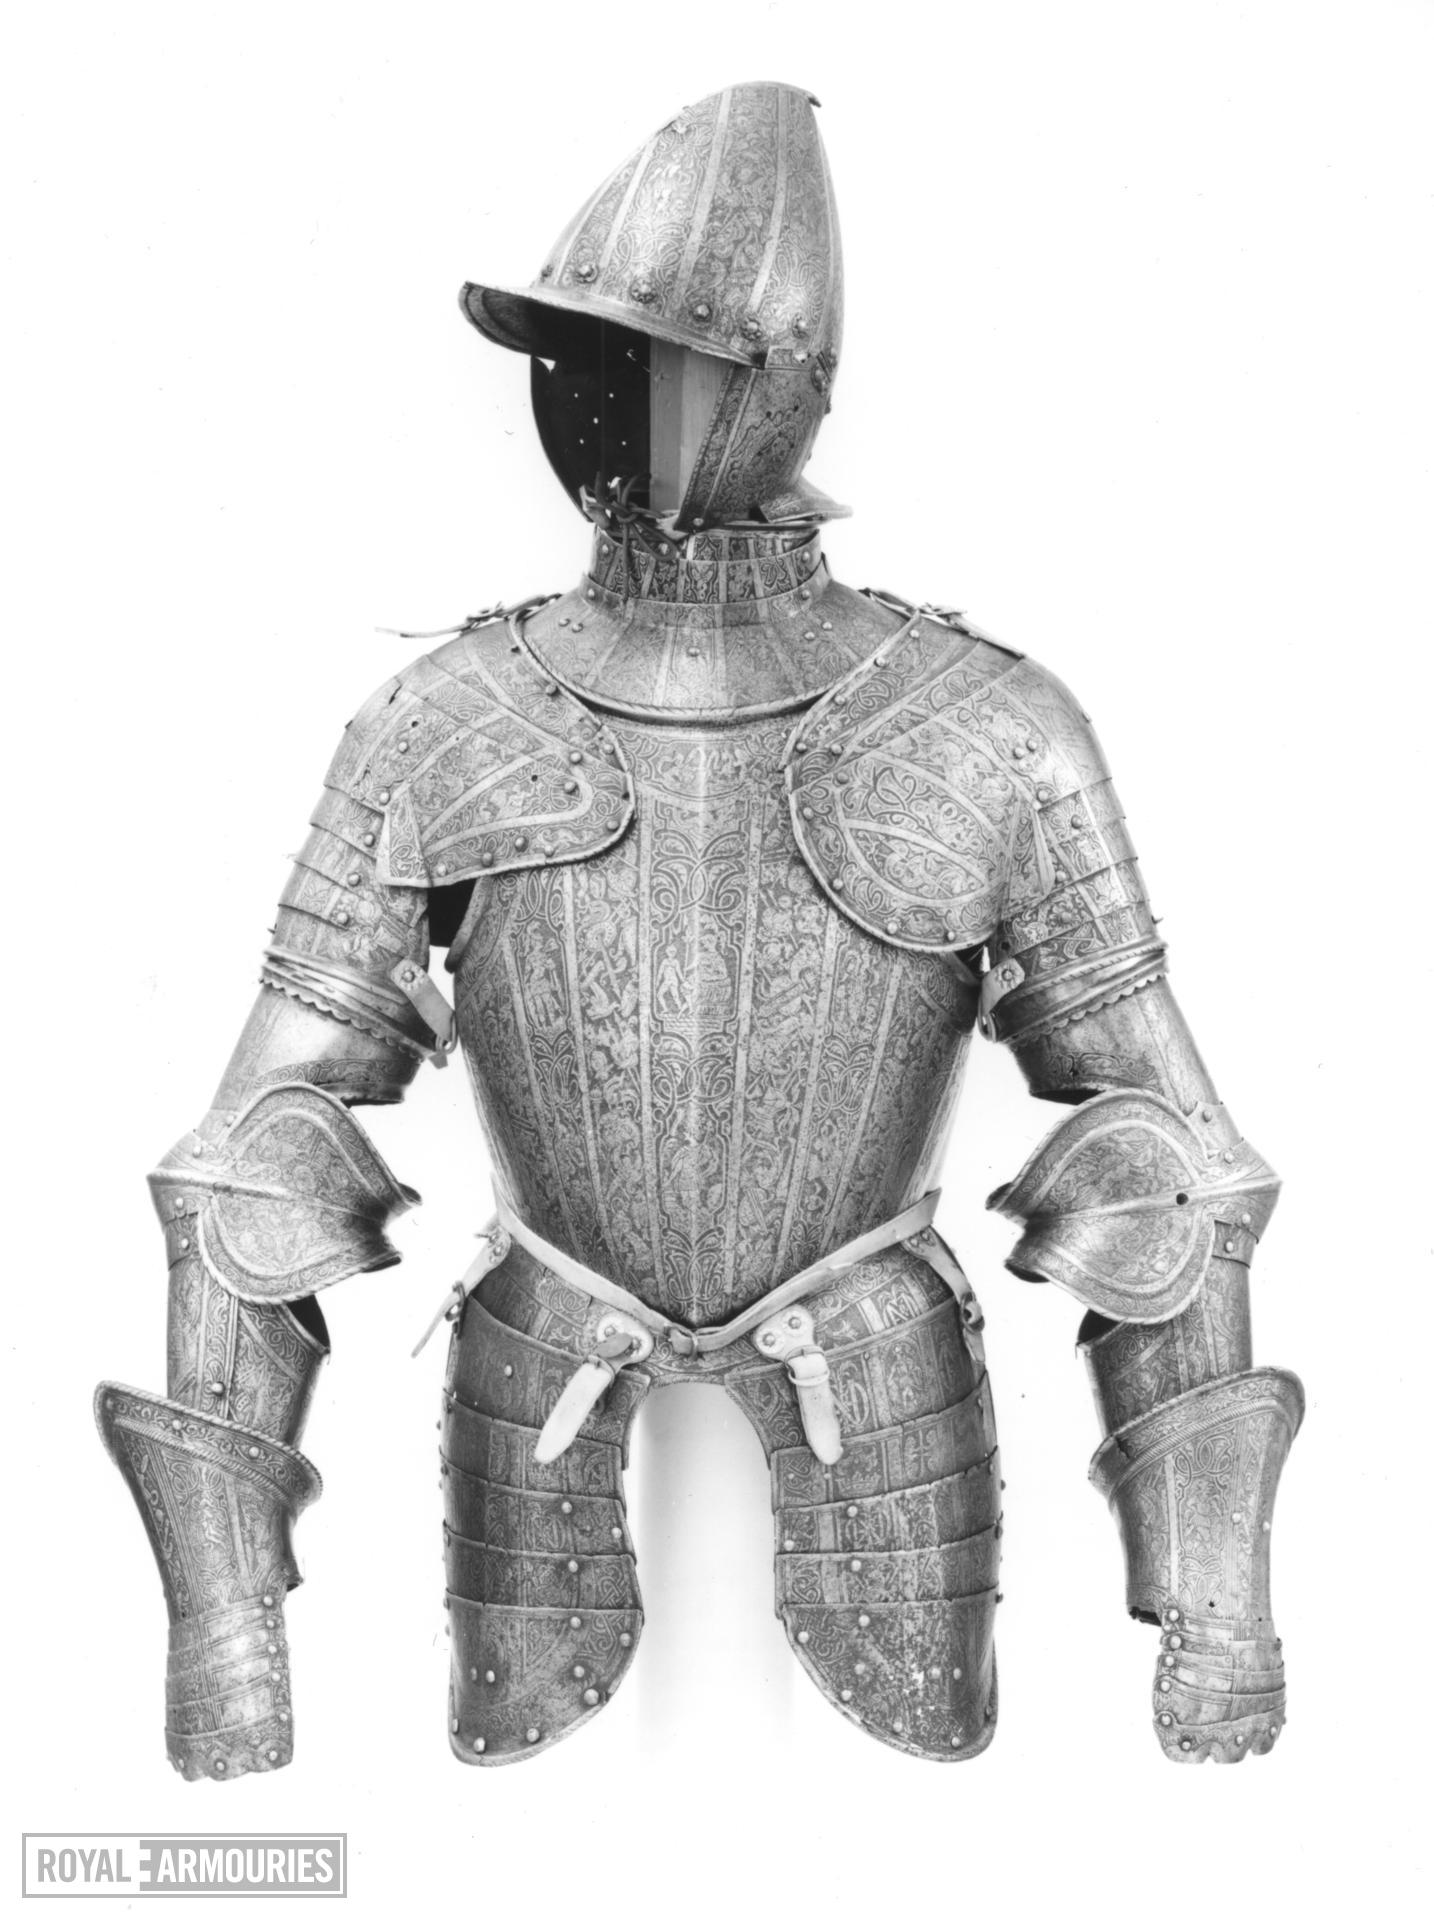 Half armour Consists of a burgonet, gorget, breastplate, backplate, tassets, pauldrons, vambrace, gauntlets.